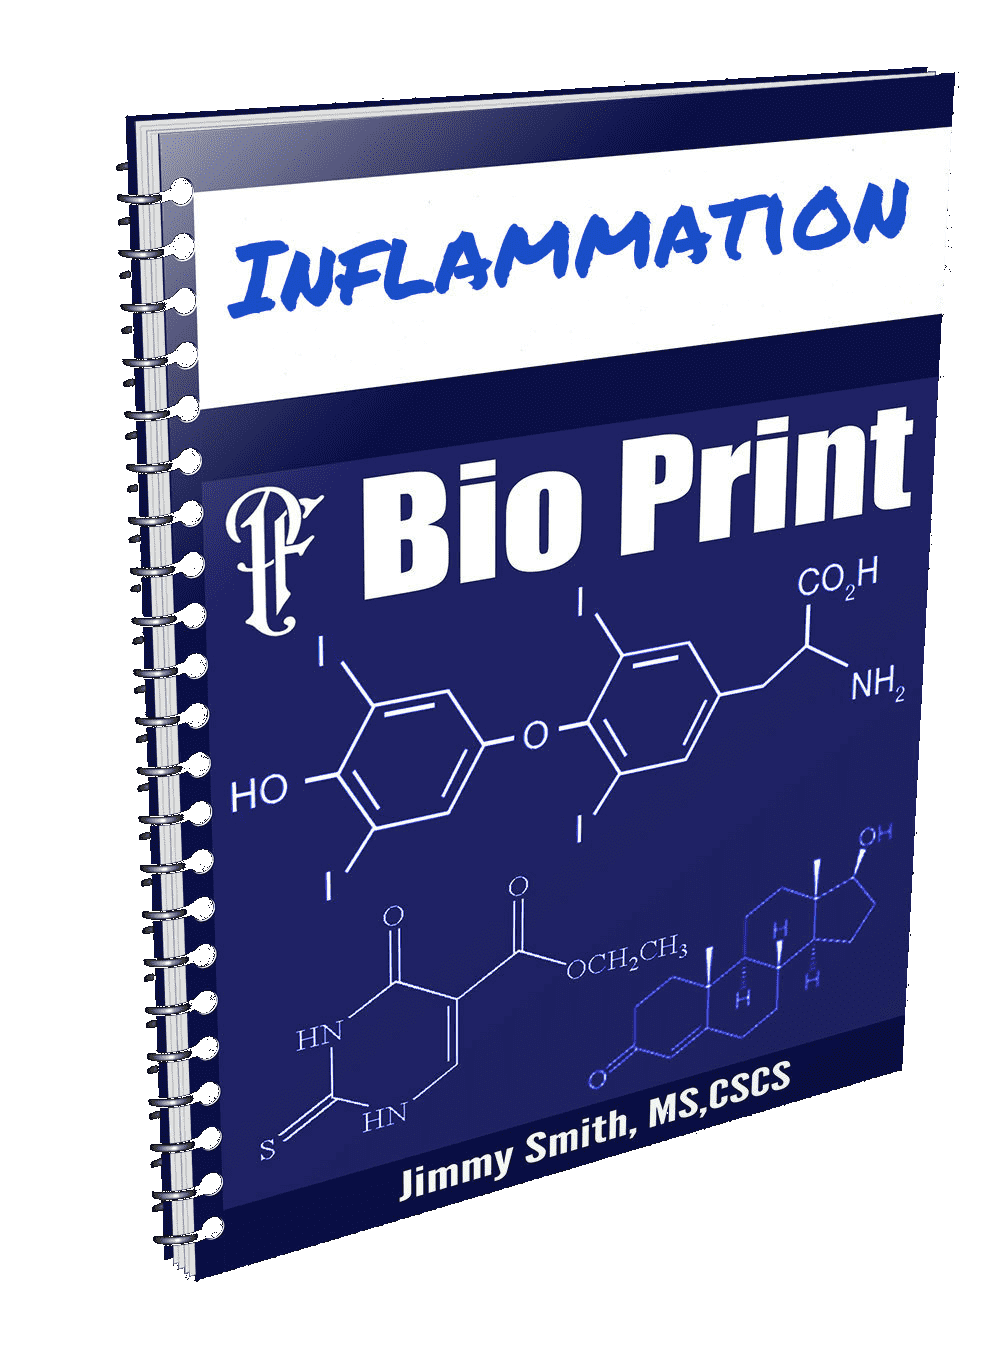 Inflammation & Joint Pain BioPrint - Physique Formula